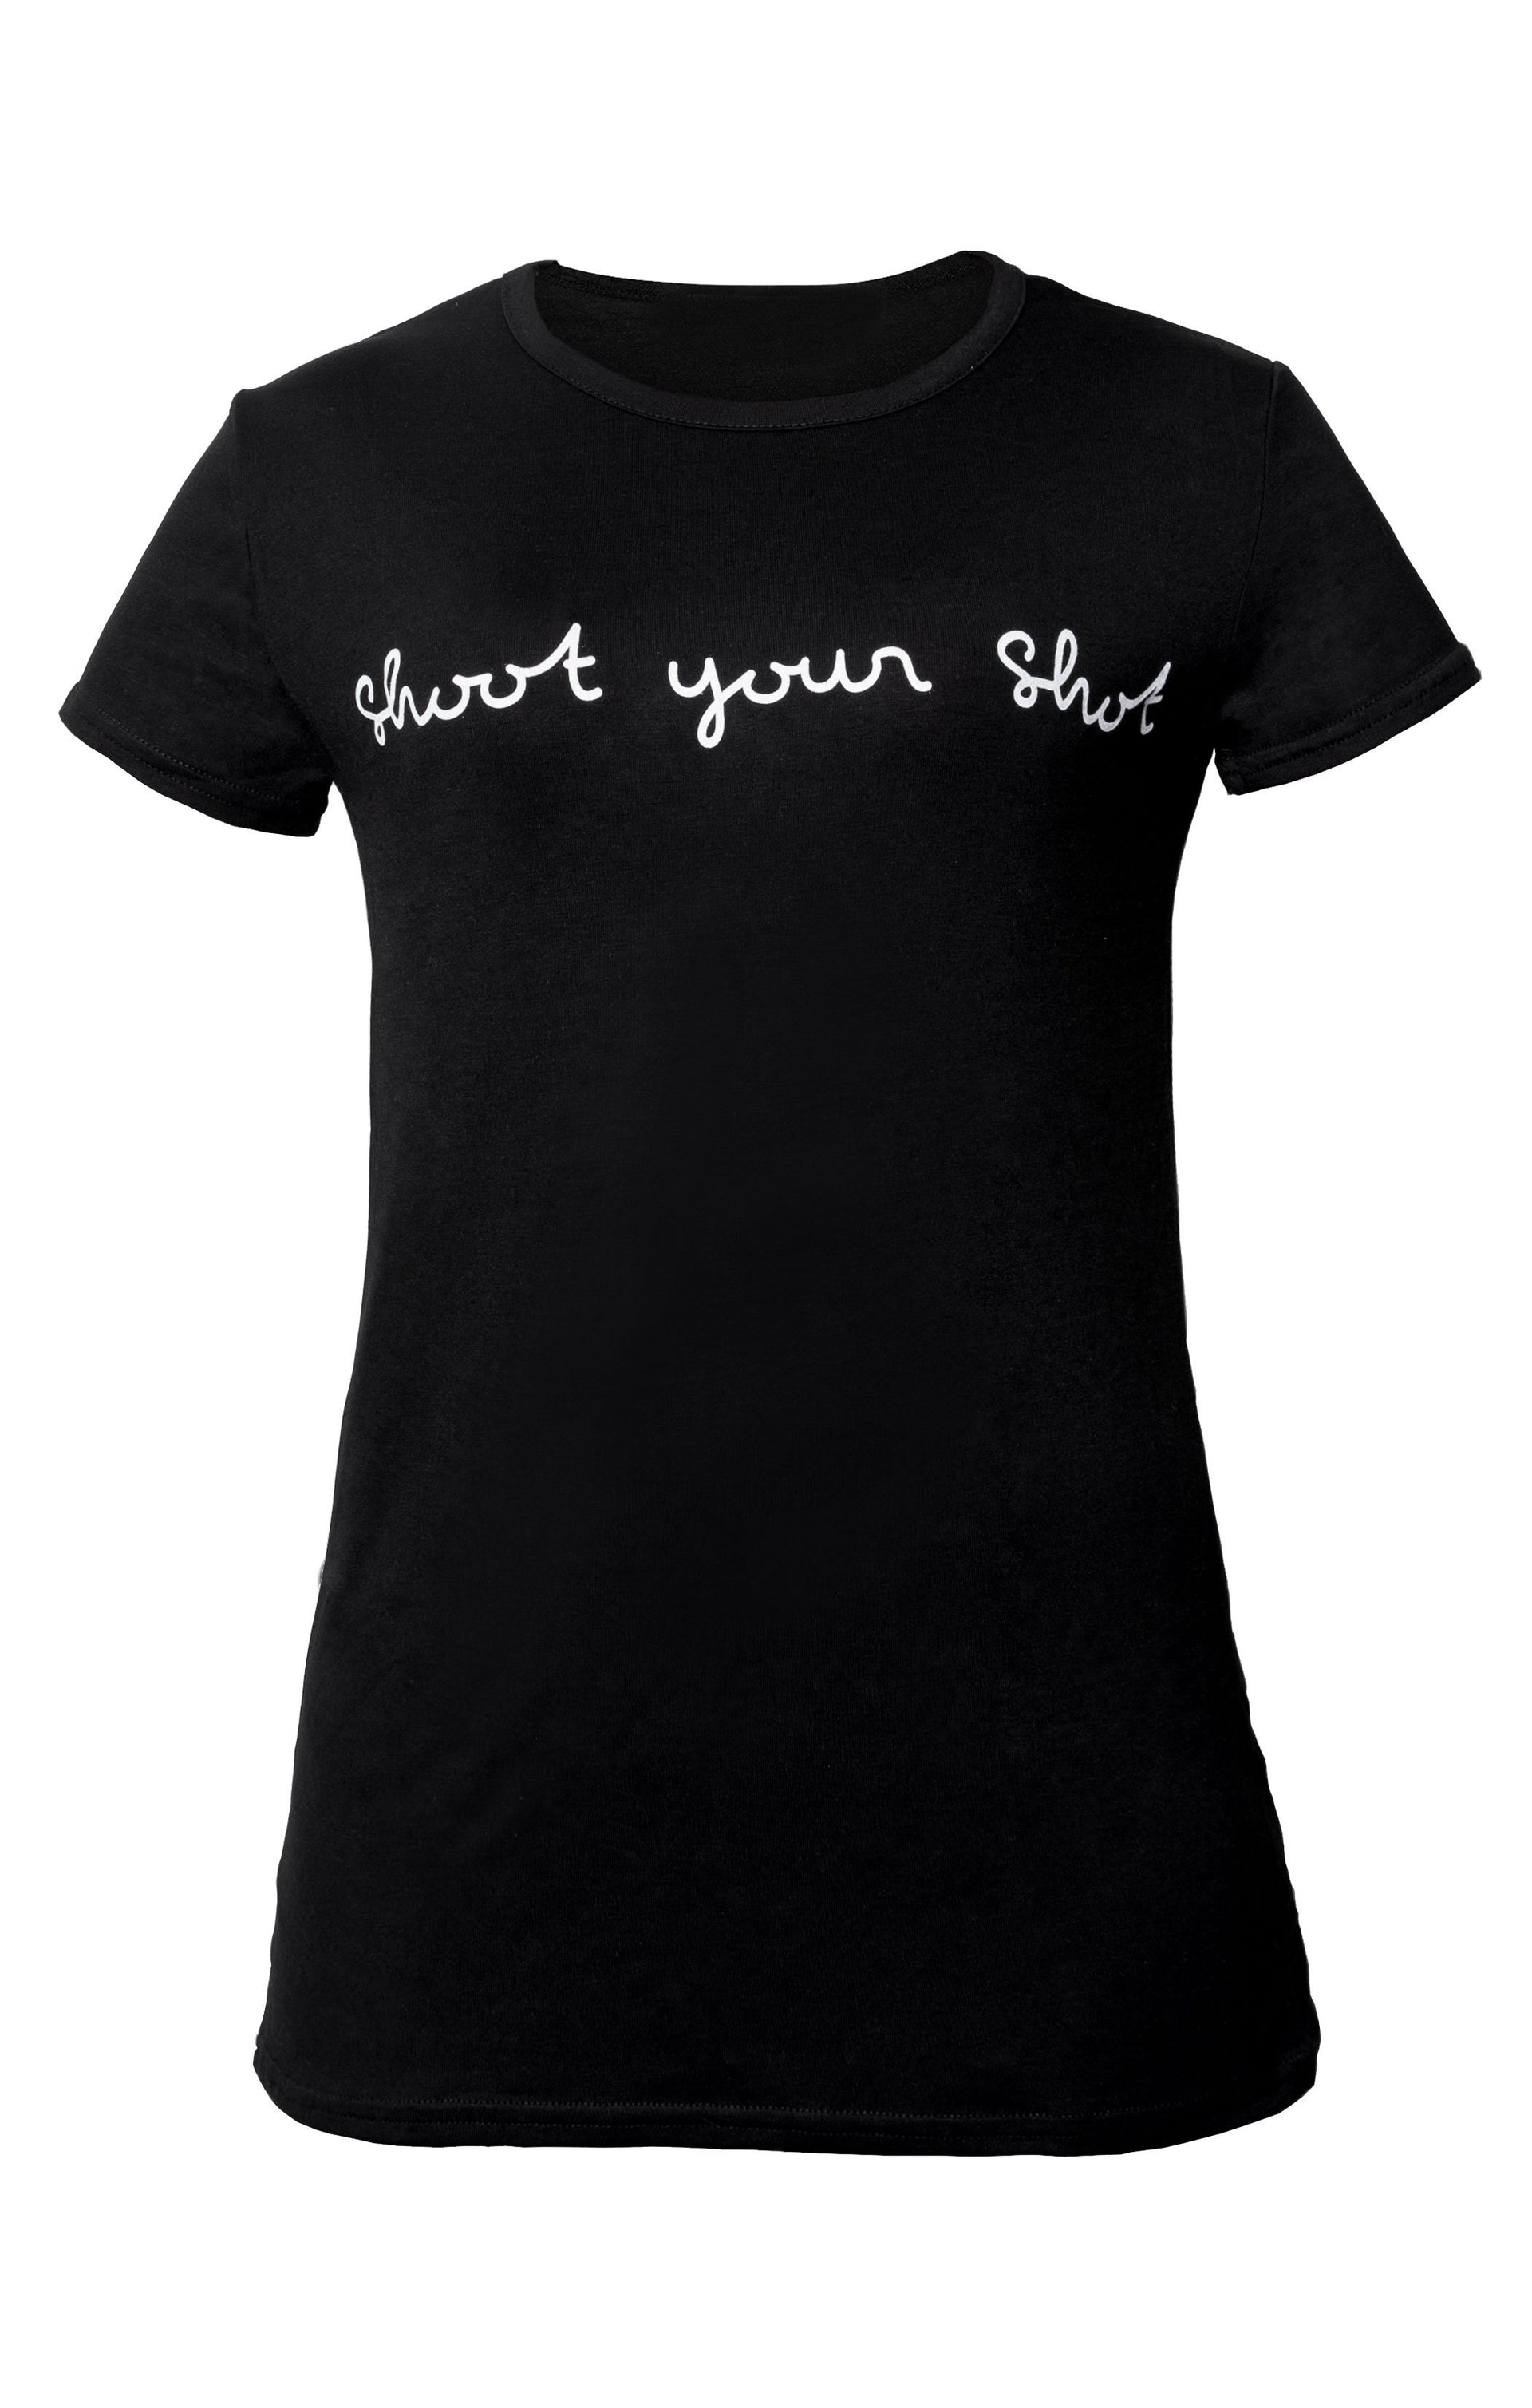 Black 'Shoot Your Shot' Slogan Print Crew Neck T-Shirt - Cordelia